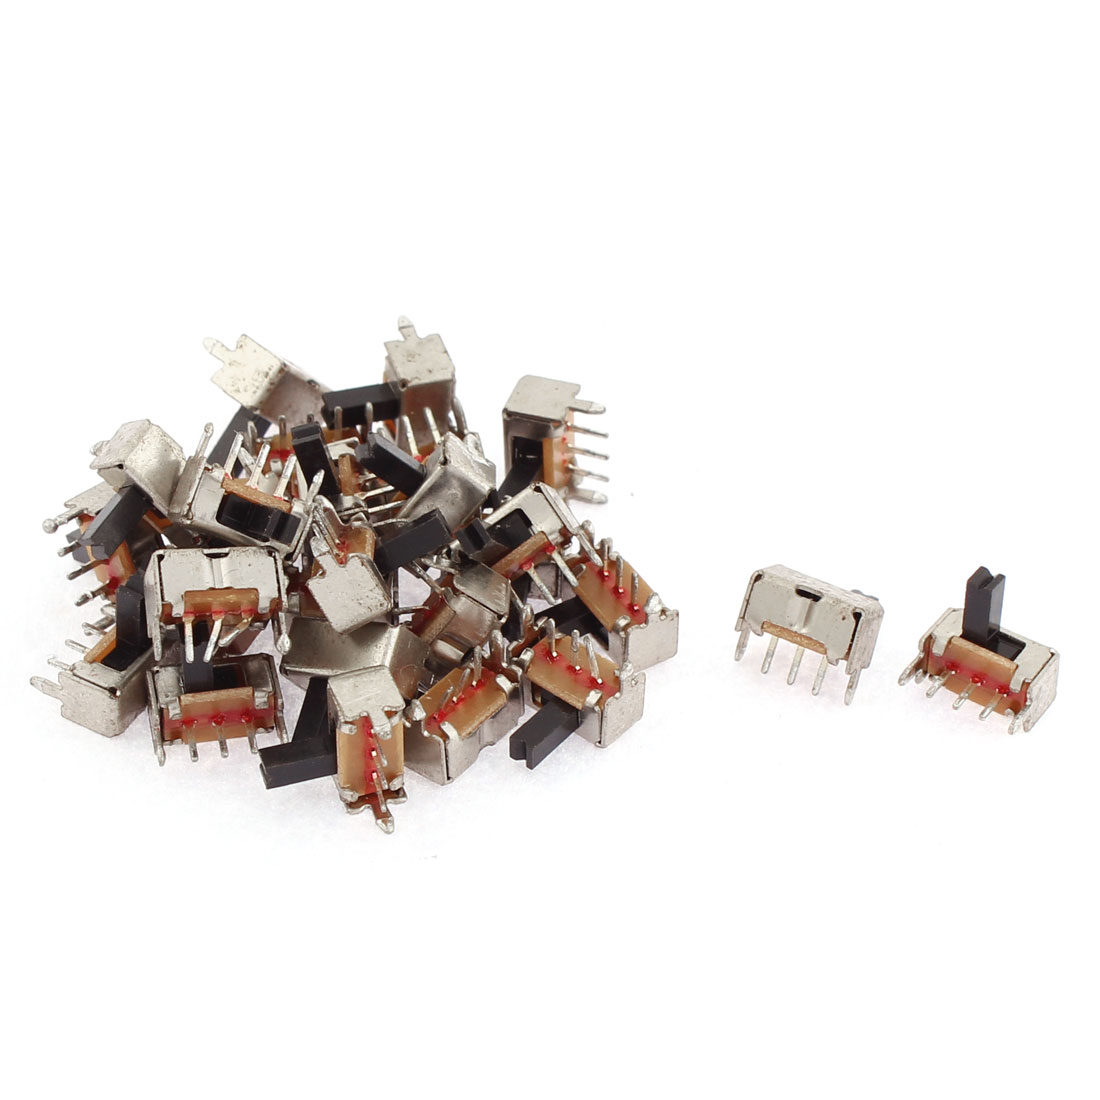 30pcs Panel Mount 2 Position SPDT 3 Terminals Mini Slide Switch DIY